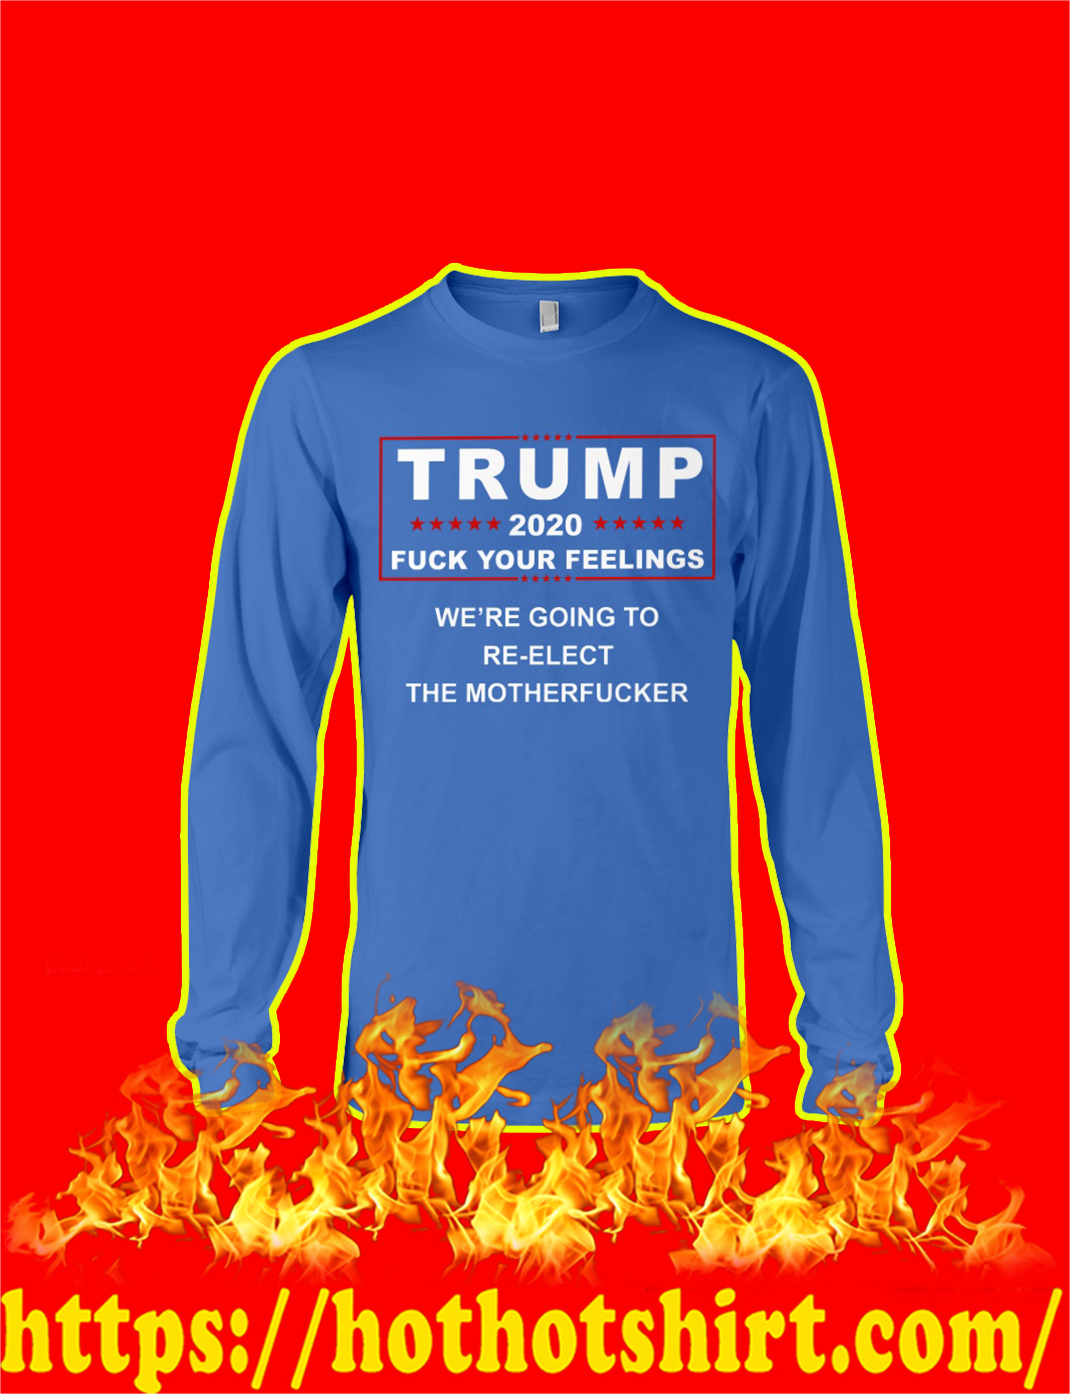 Trump 2020 Fuck Your Feelings longsleeve tee